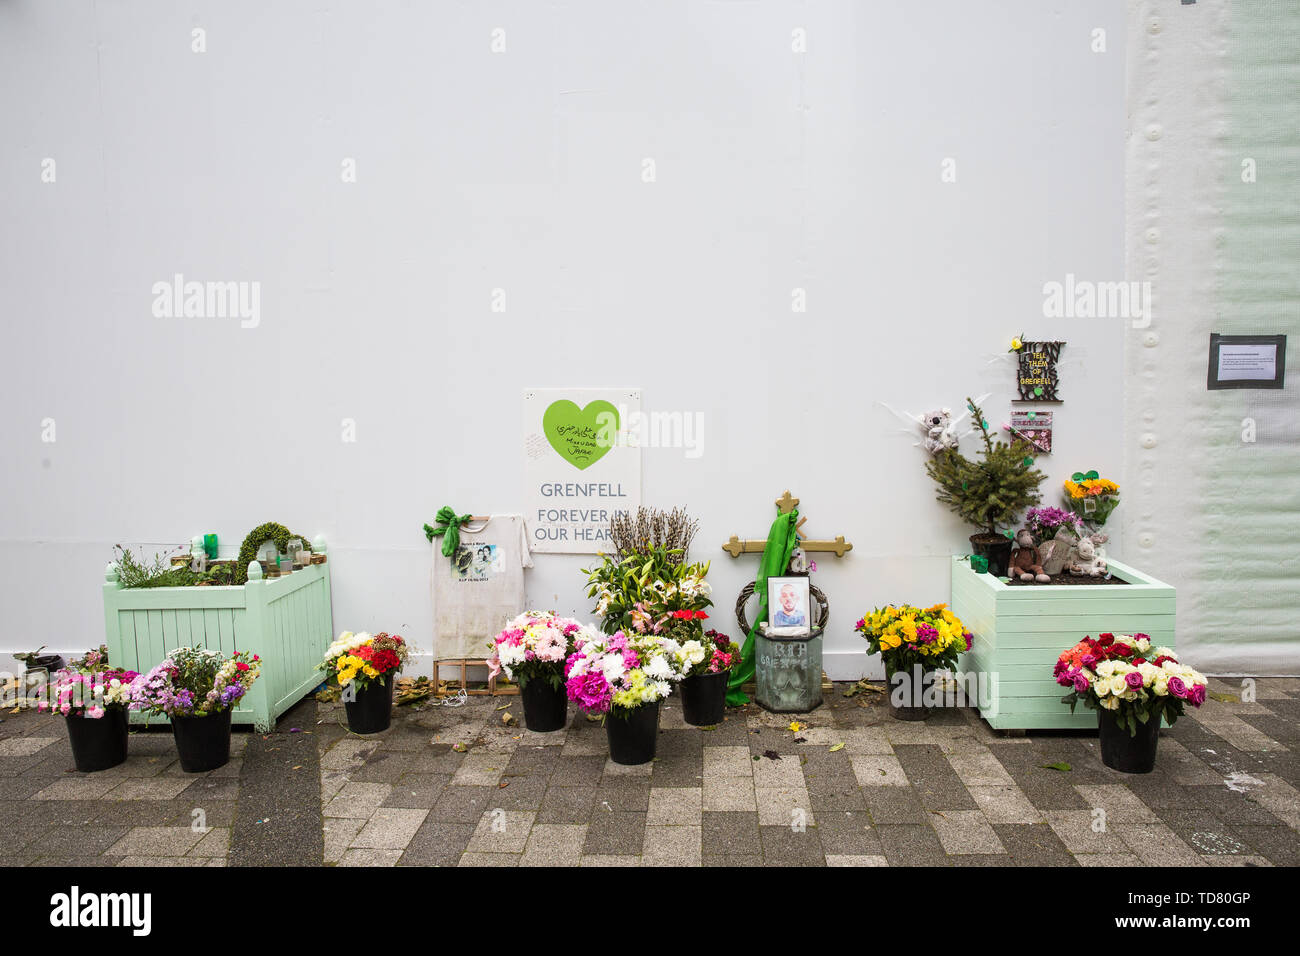 London, UK. 13 June, 2019. Tributes beneath the Grenfell Tower in North Kensington. Tomorrow, the Grenfell community will mark the second anniversary of the Grenfell Tower fire on 14th June 2017 in which at least 72 people died and over 70 were injured. Two years on, some family members remain in temporary accommodation and many are still traumatised. Phase 2 of the Grenfell Inquiry will begin in 2020, with criminal investigation findings expected to be sent to the Crown Prosecution Service in 2021. Credit: Mark Kerrison/Alamy Live News - Stock Image